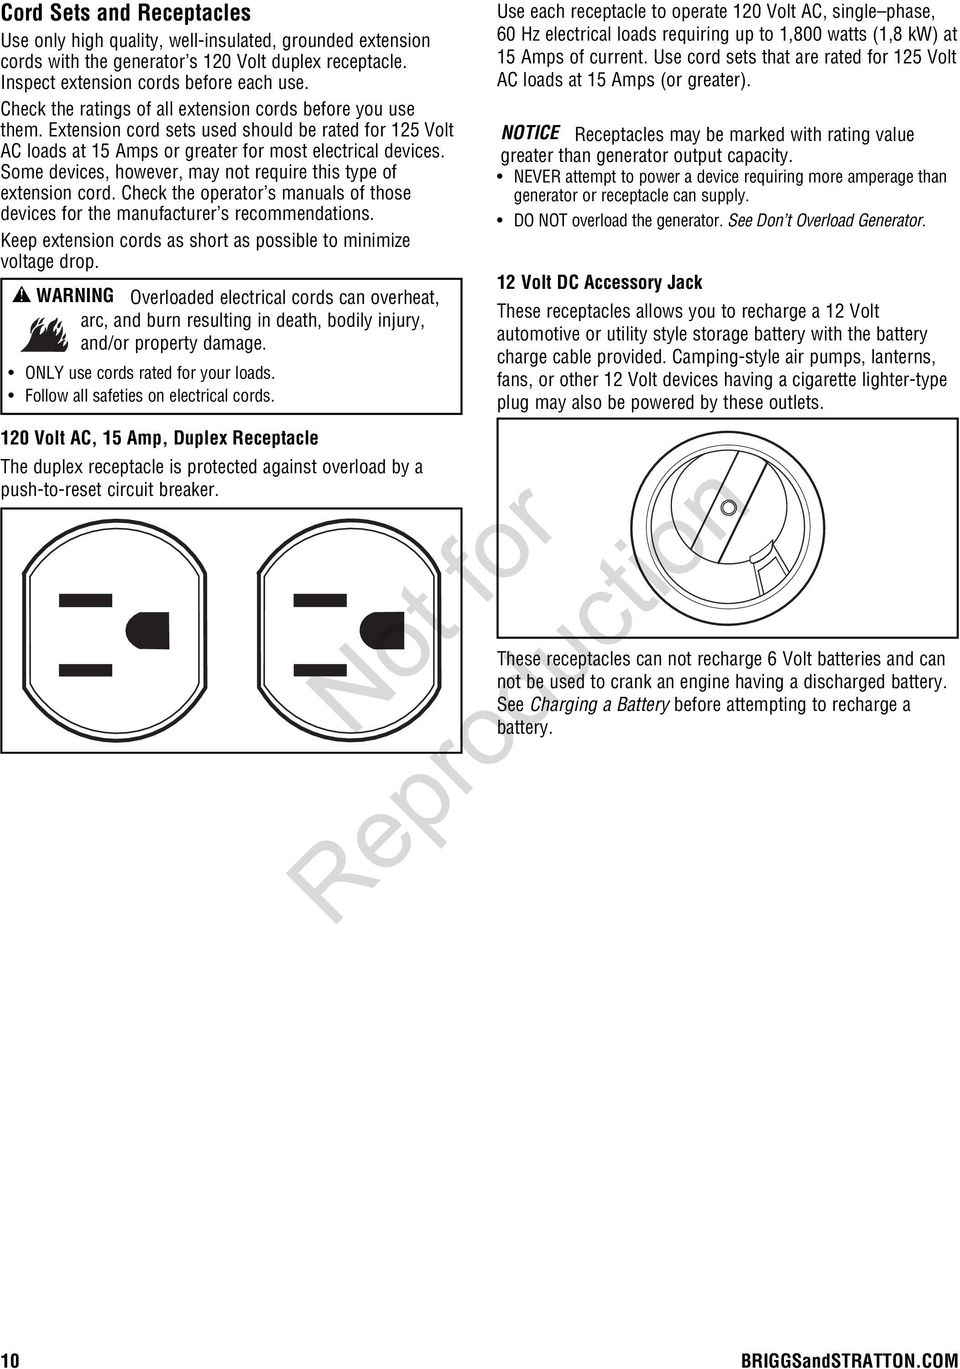 Portable Generator Operator S Manual Pdf An Electrical Circuit Also Requires A Power Source Battery Some Devices However May Not Require This Type Of Extension Cord Check The